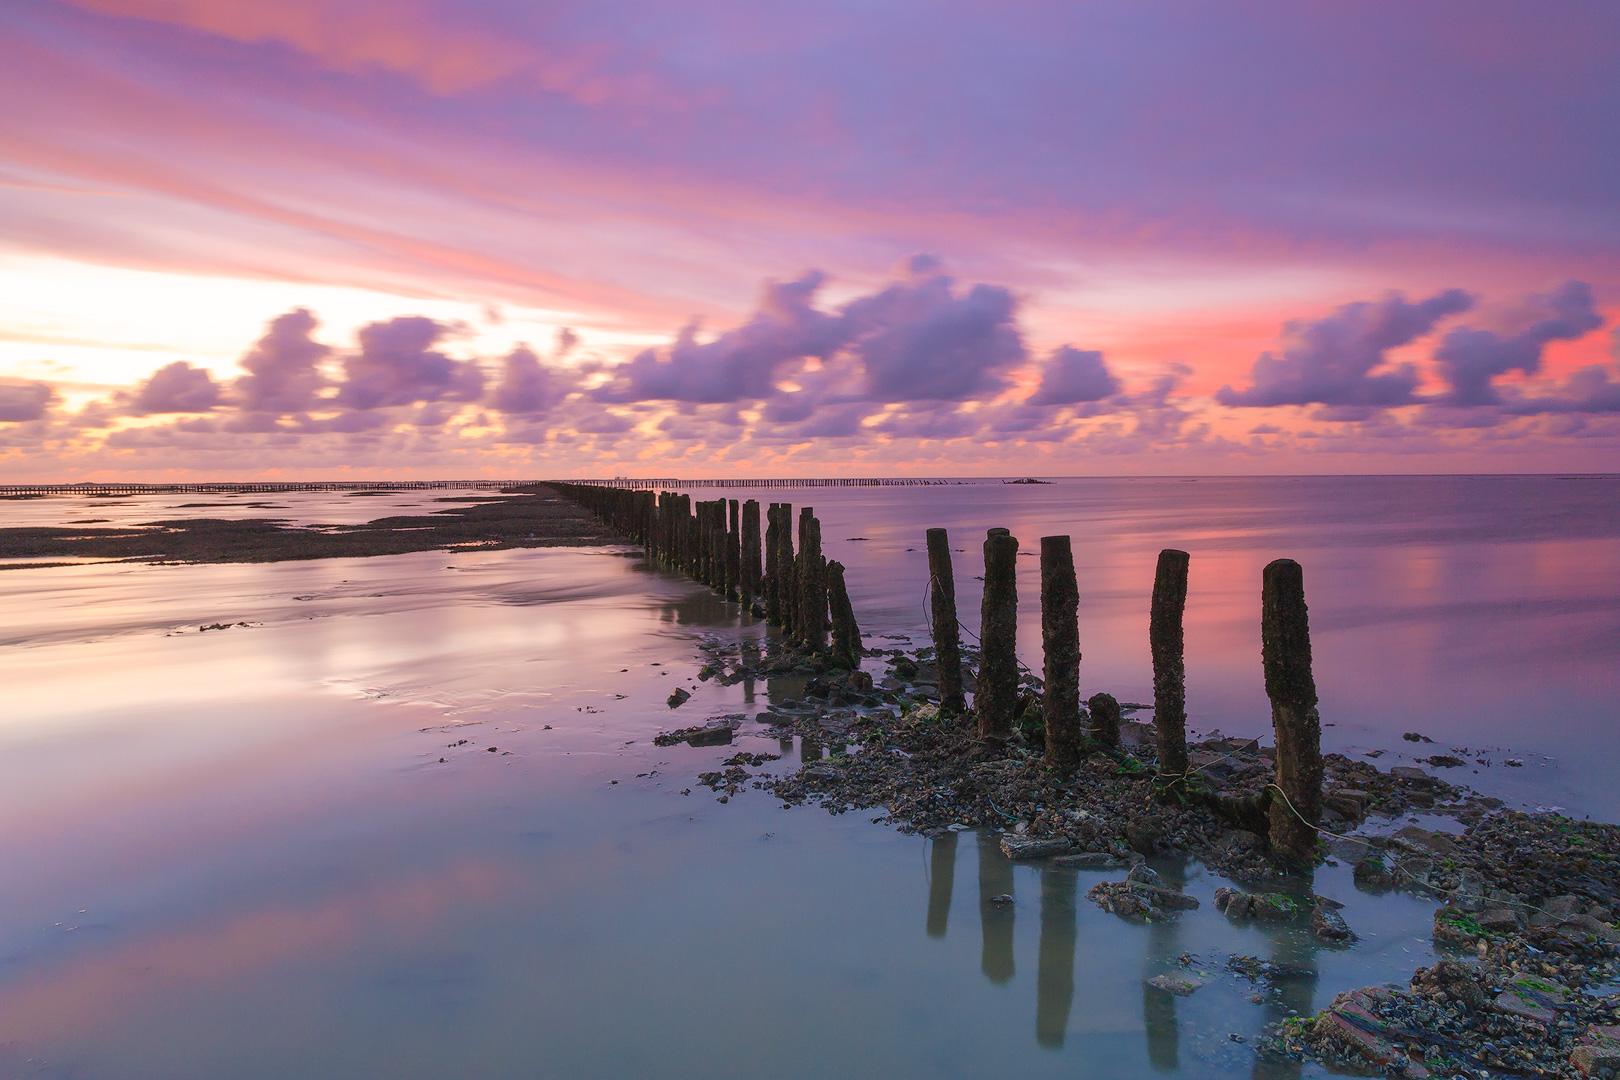 A colorful and dramatic sunset over the Wadden sea near Ternaard